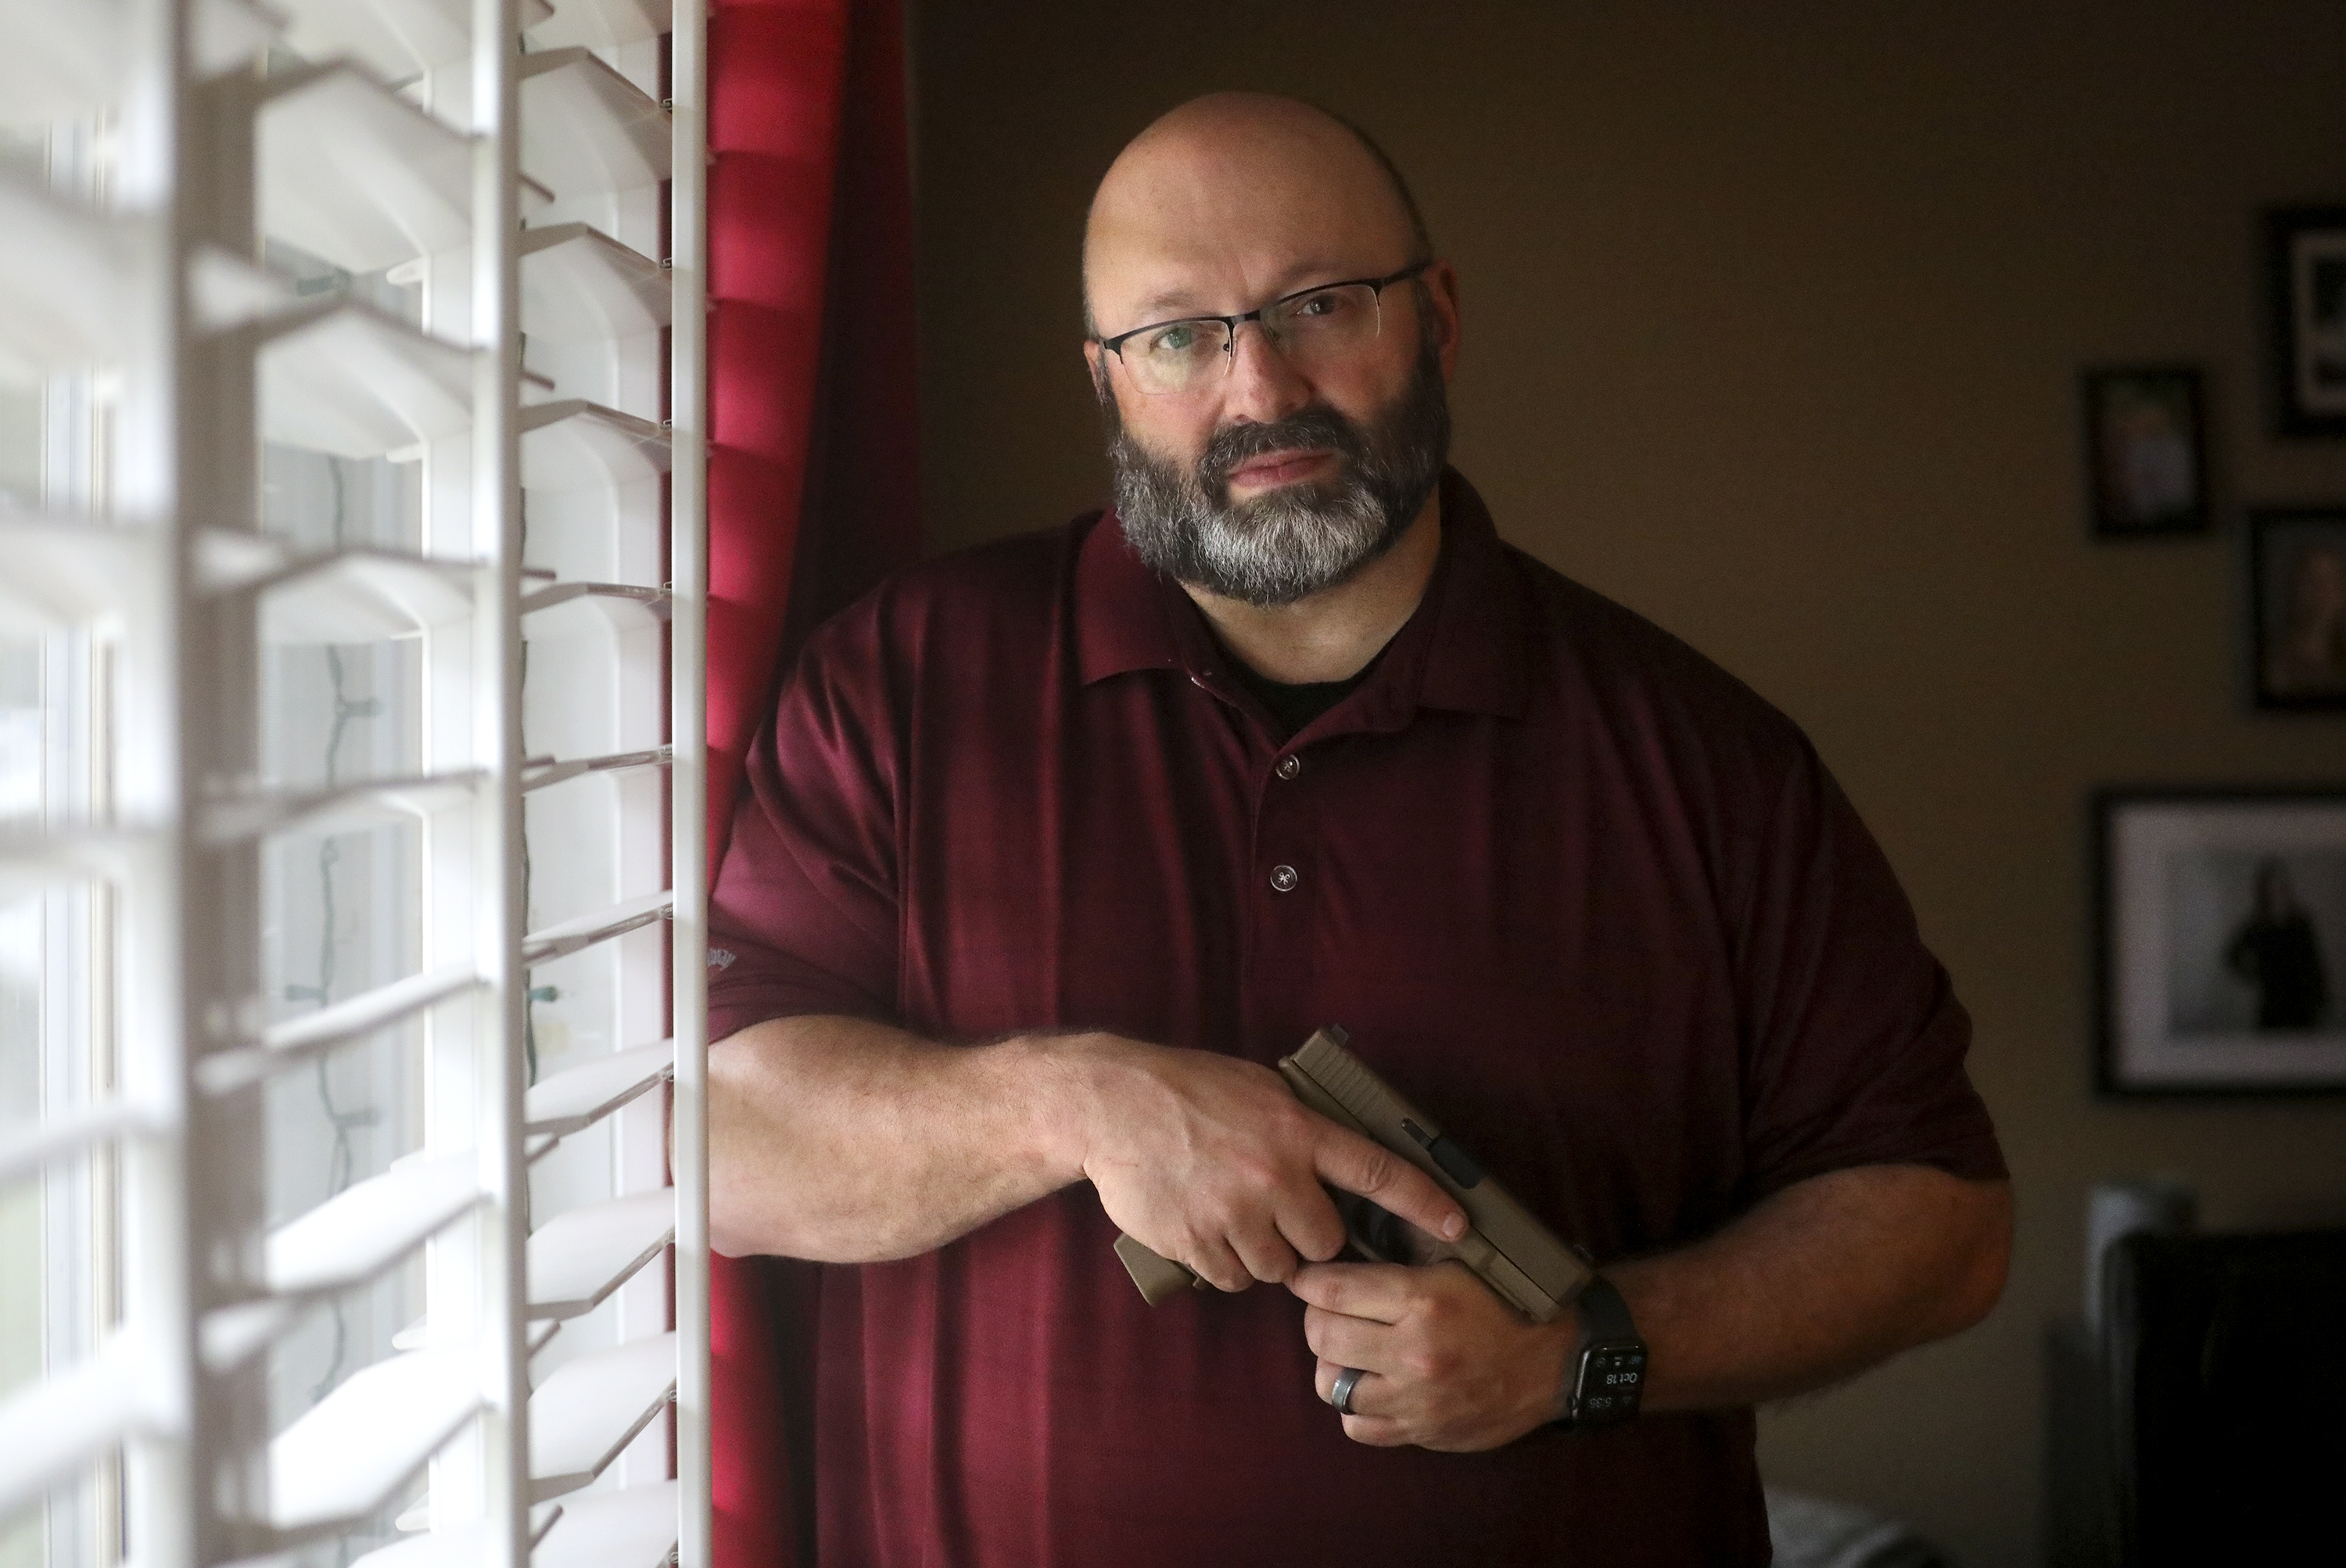 Aaron Turner, a concealed carry instructor, poses for a portrait with his Glock 19X pistol at his home in Murray on Monday, Oct. 18, 2021.